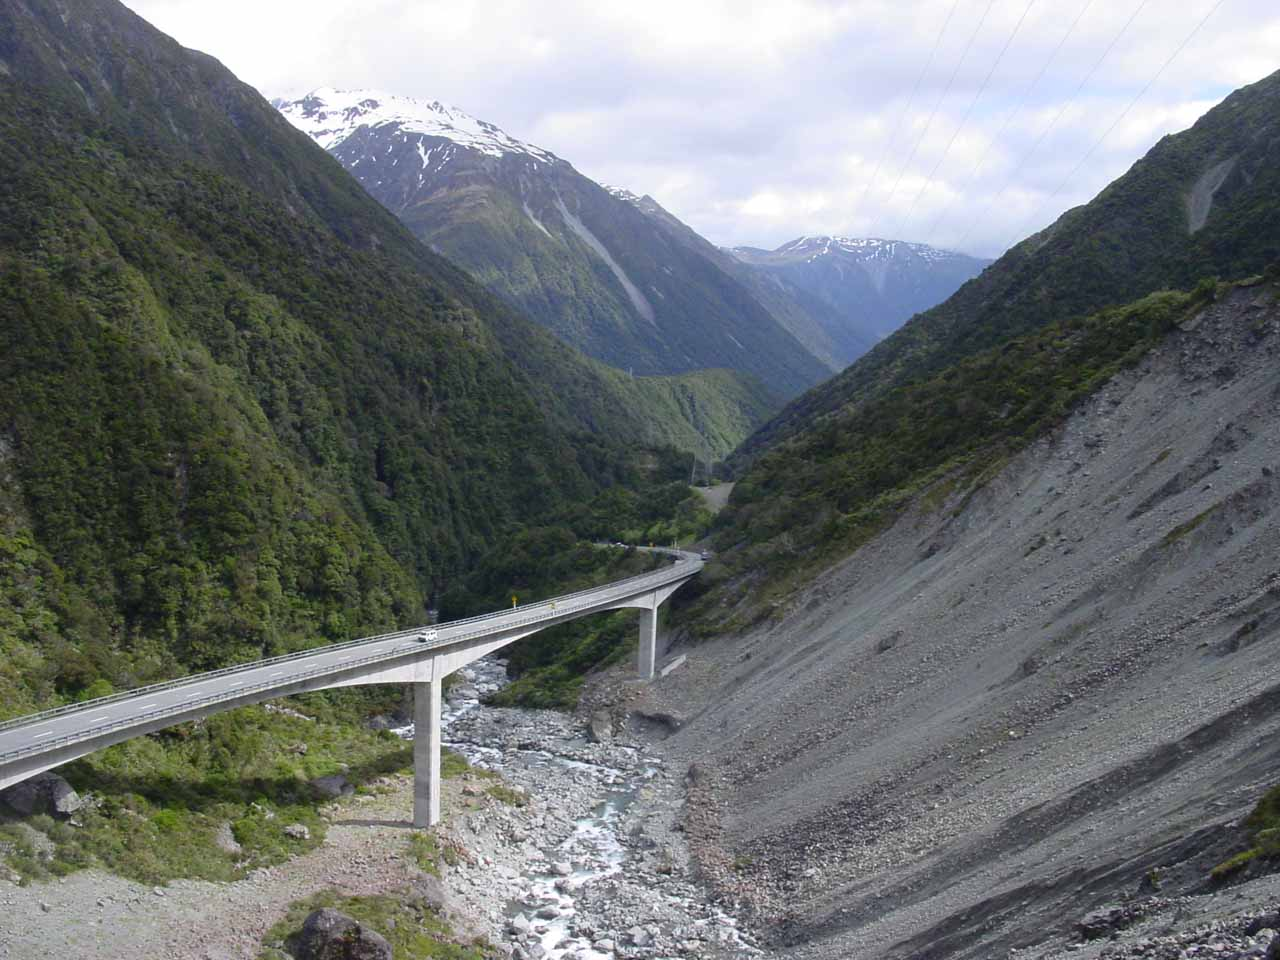 About 57km east of Kumara along the SH73 was the Otira Viaduct, which was an instrumental piece of engineering to make the traverse more reliable as a supply route between Christchurch and Greymouth